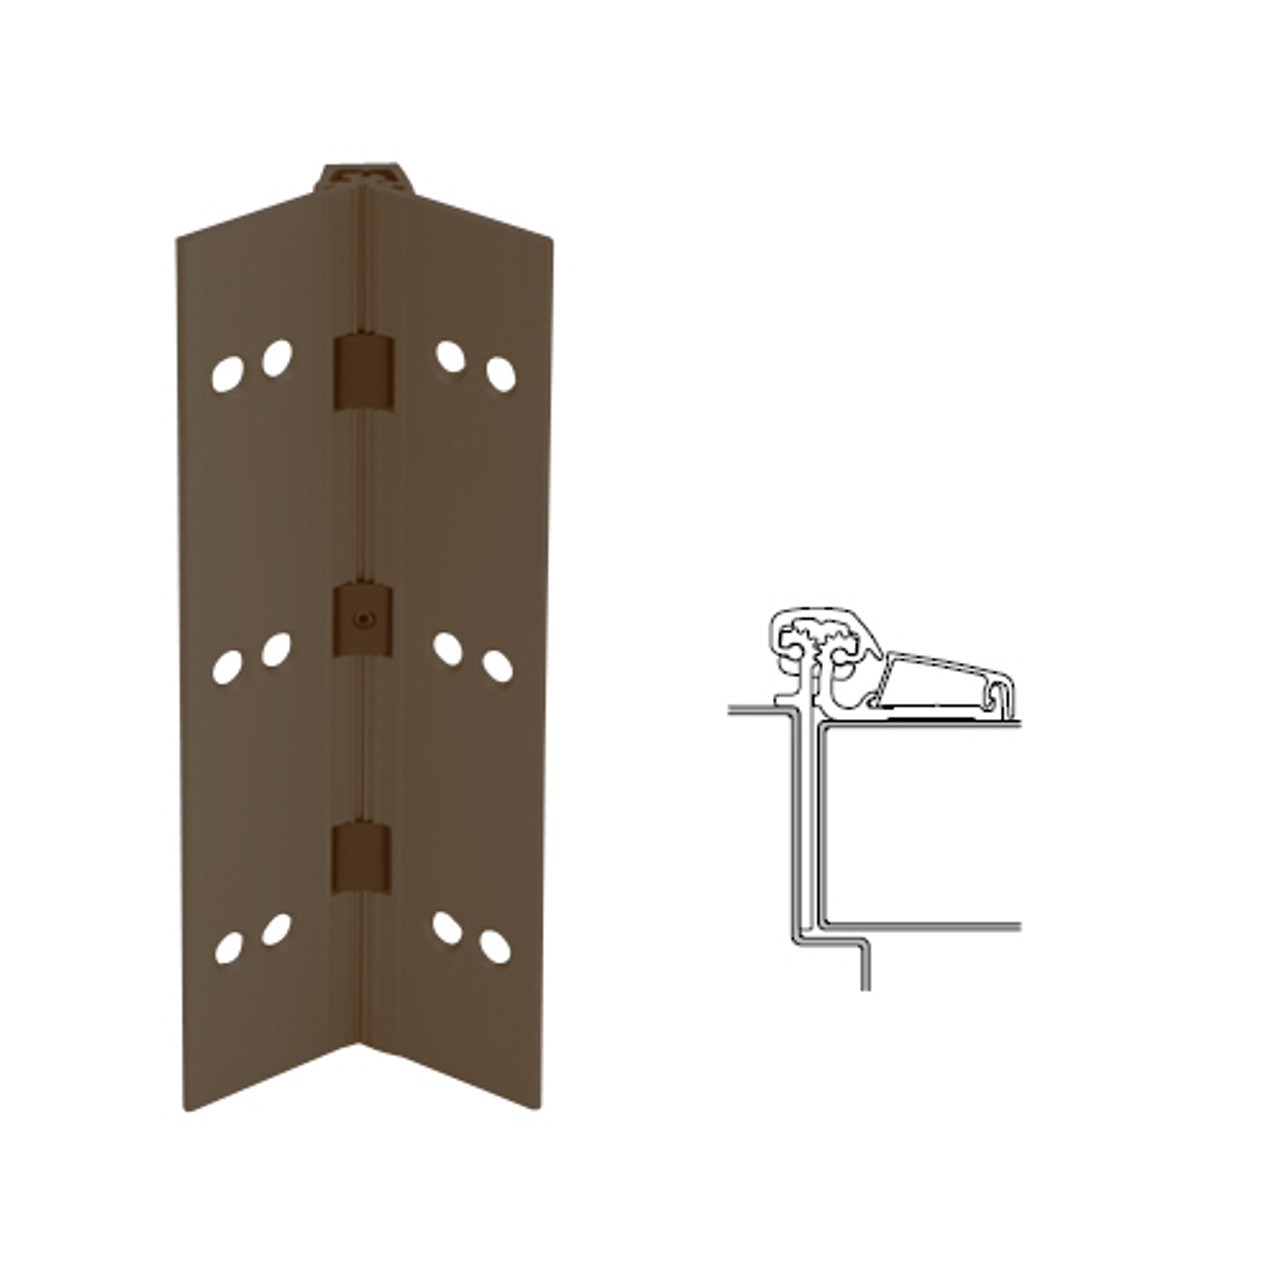 054XY-313AN-120-SECHM IVES Adjustable Half Surface Continuous Geared Hinges with Security Screws - Hex Pin Drive in Dark Bronze Anodized